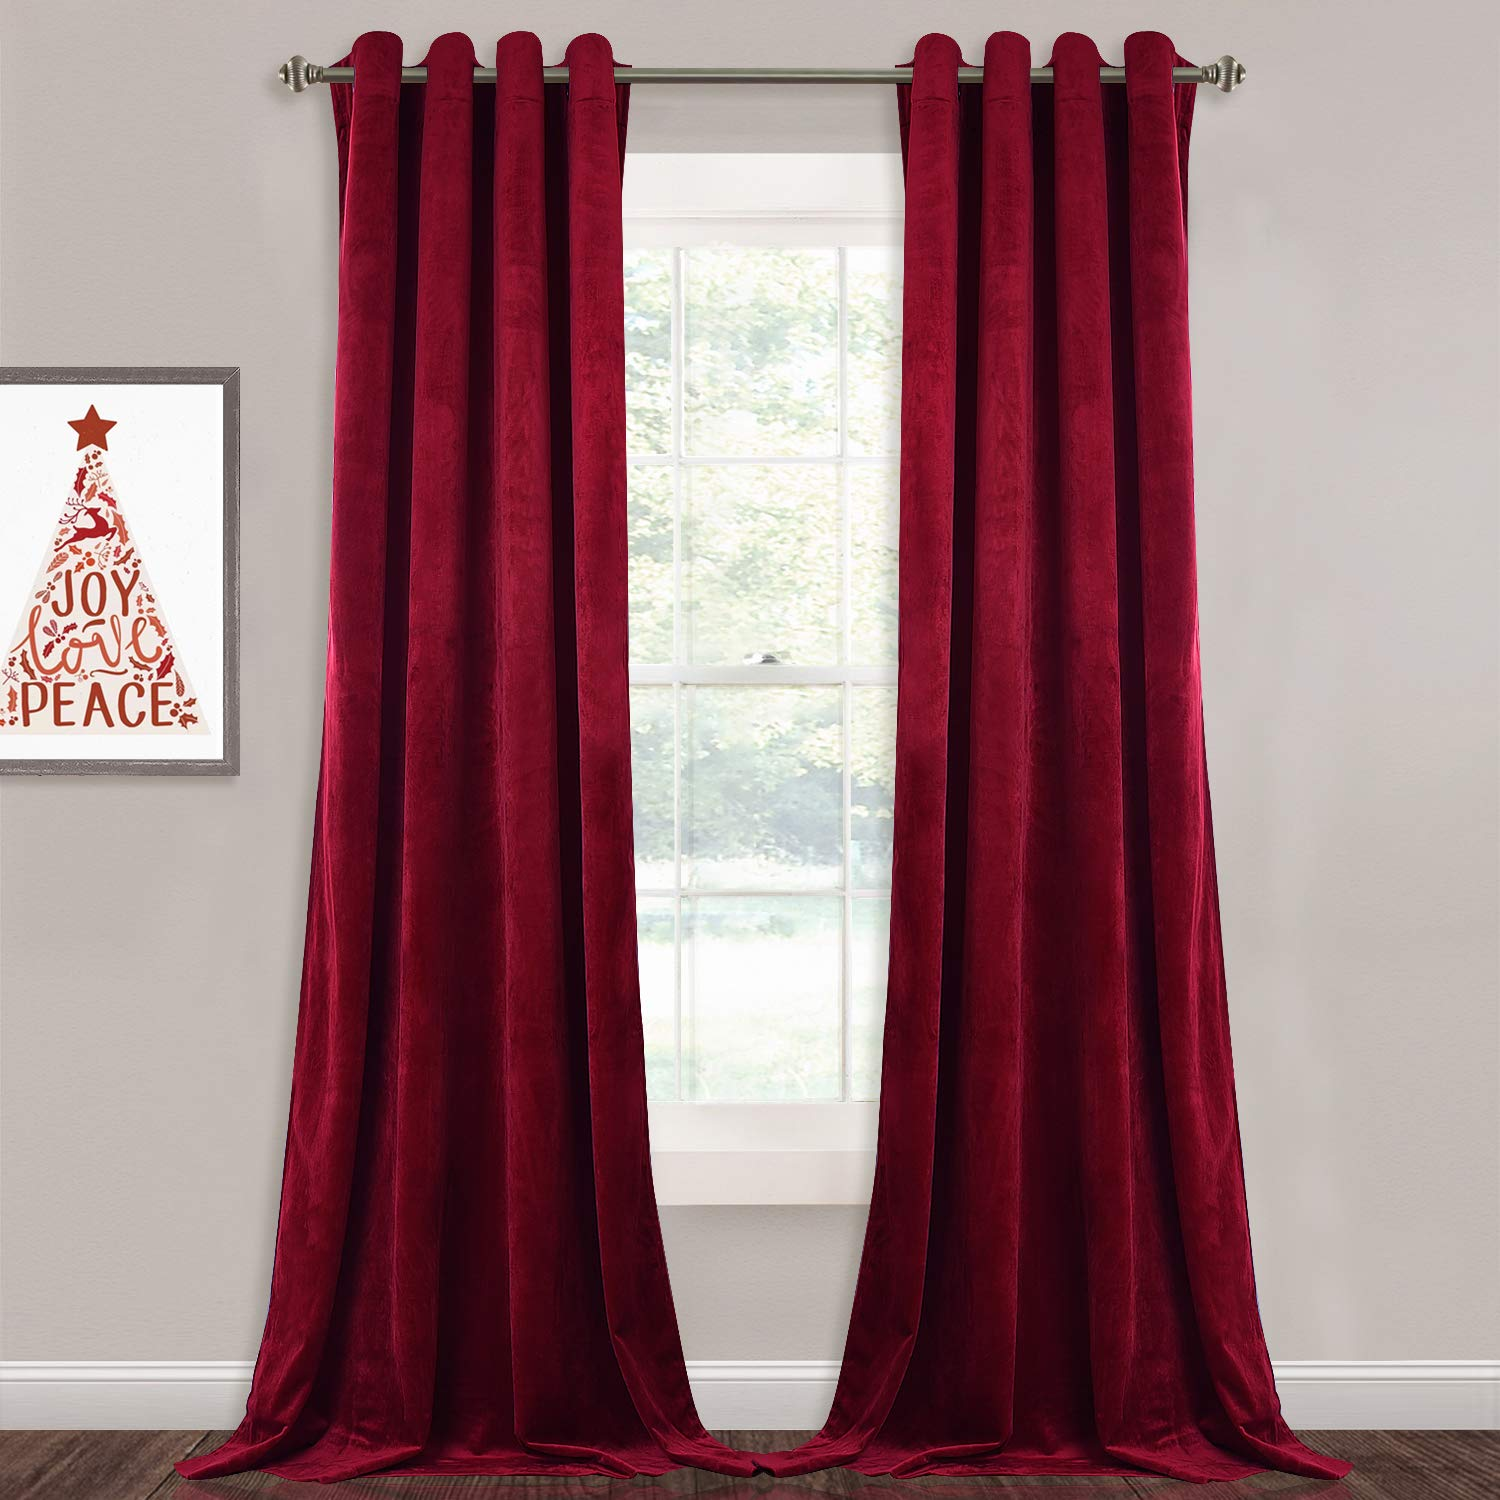 "Room Darkening Theater Velvet Curtains - Thick Heavy Duty Velvet Drapes with Rings Top Rustic Home Decor Window Dressing for Living Room/Holiday/Stage, Red, 52"" x 84"", 2 Pieces"